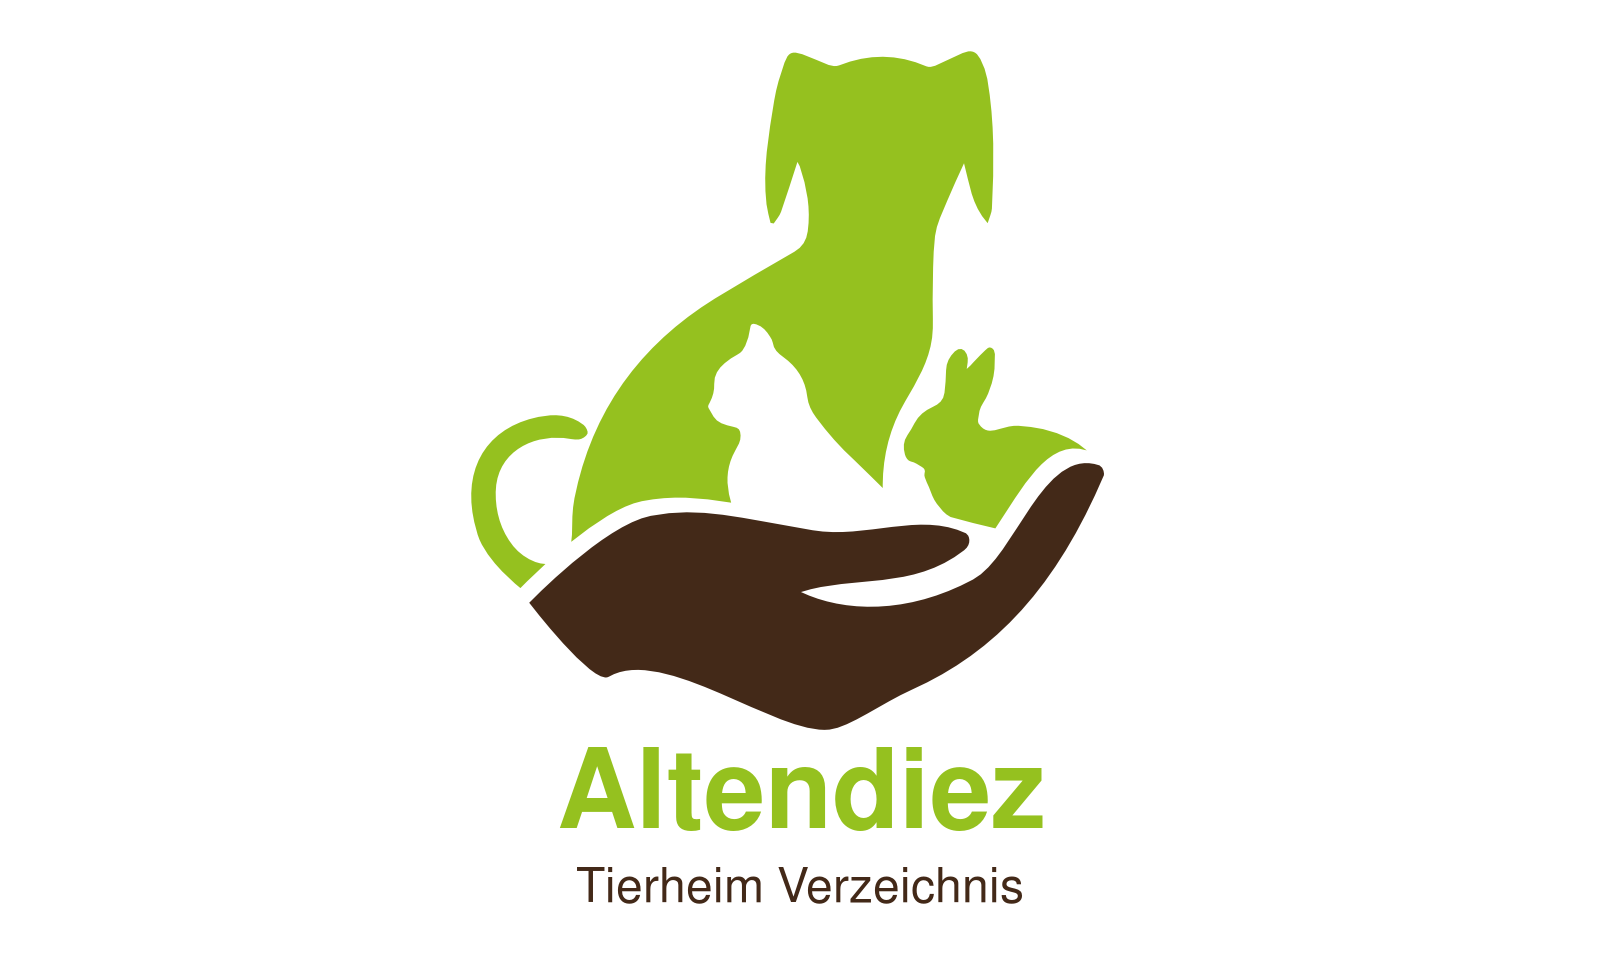 Tierheim Altendiez